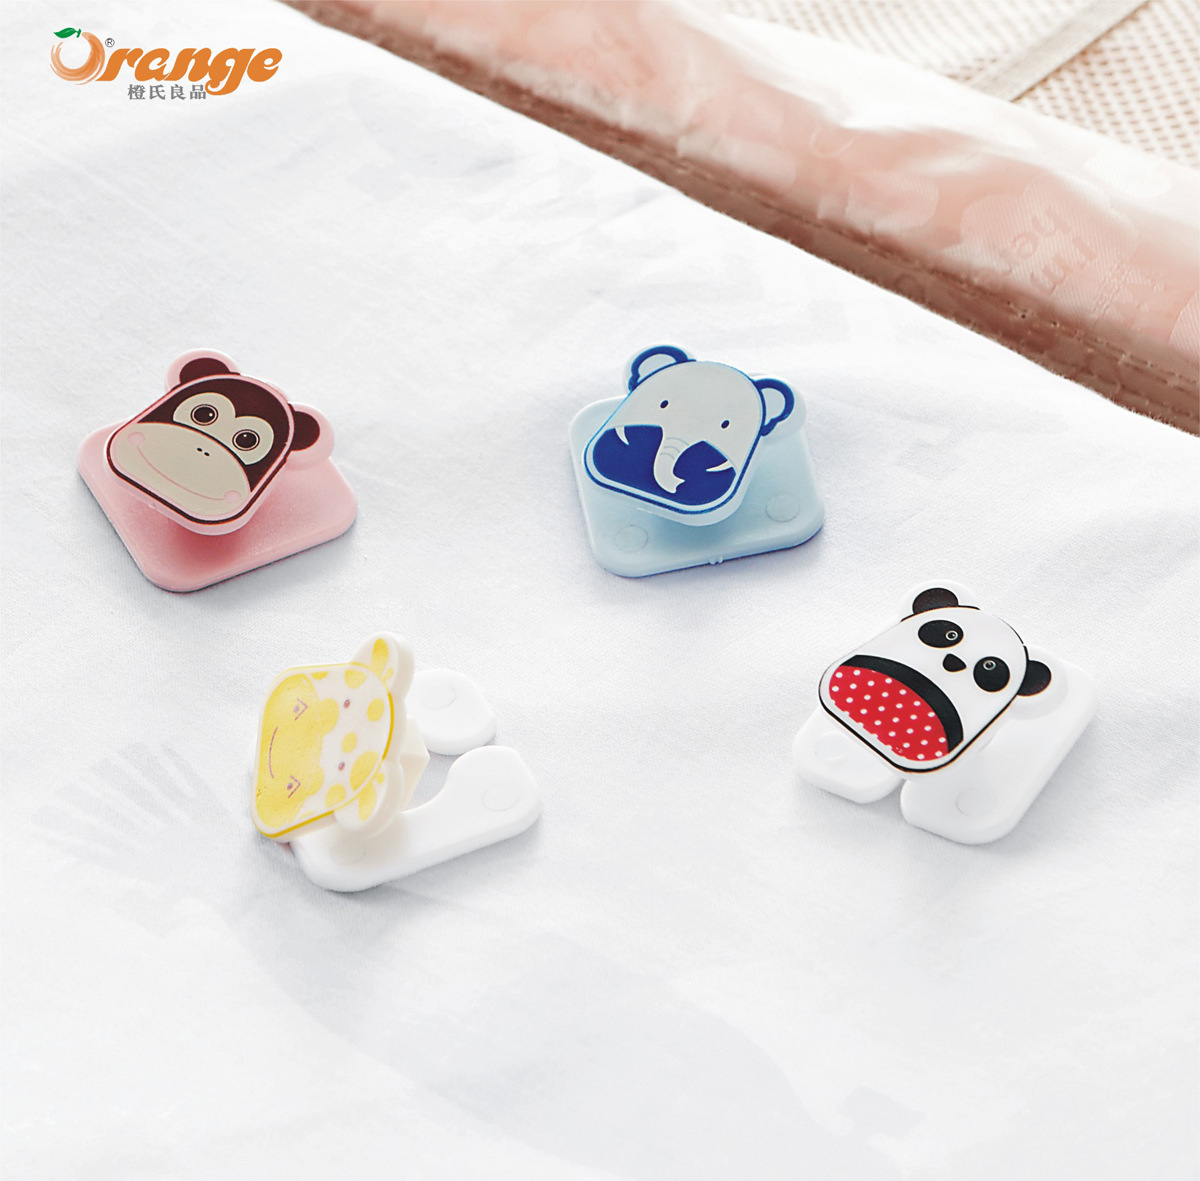 Household Quilt Anti-slip Fixed Device Anti-Skid Be Angle Quilt Cover Fixing Buckle Clip Safe No Needle (4 Pack)